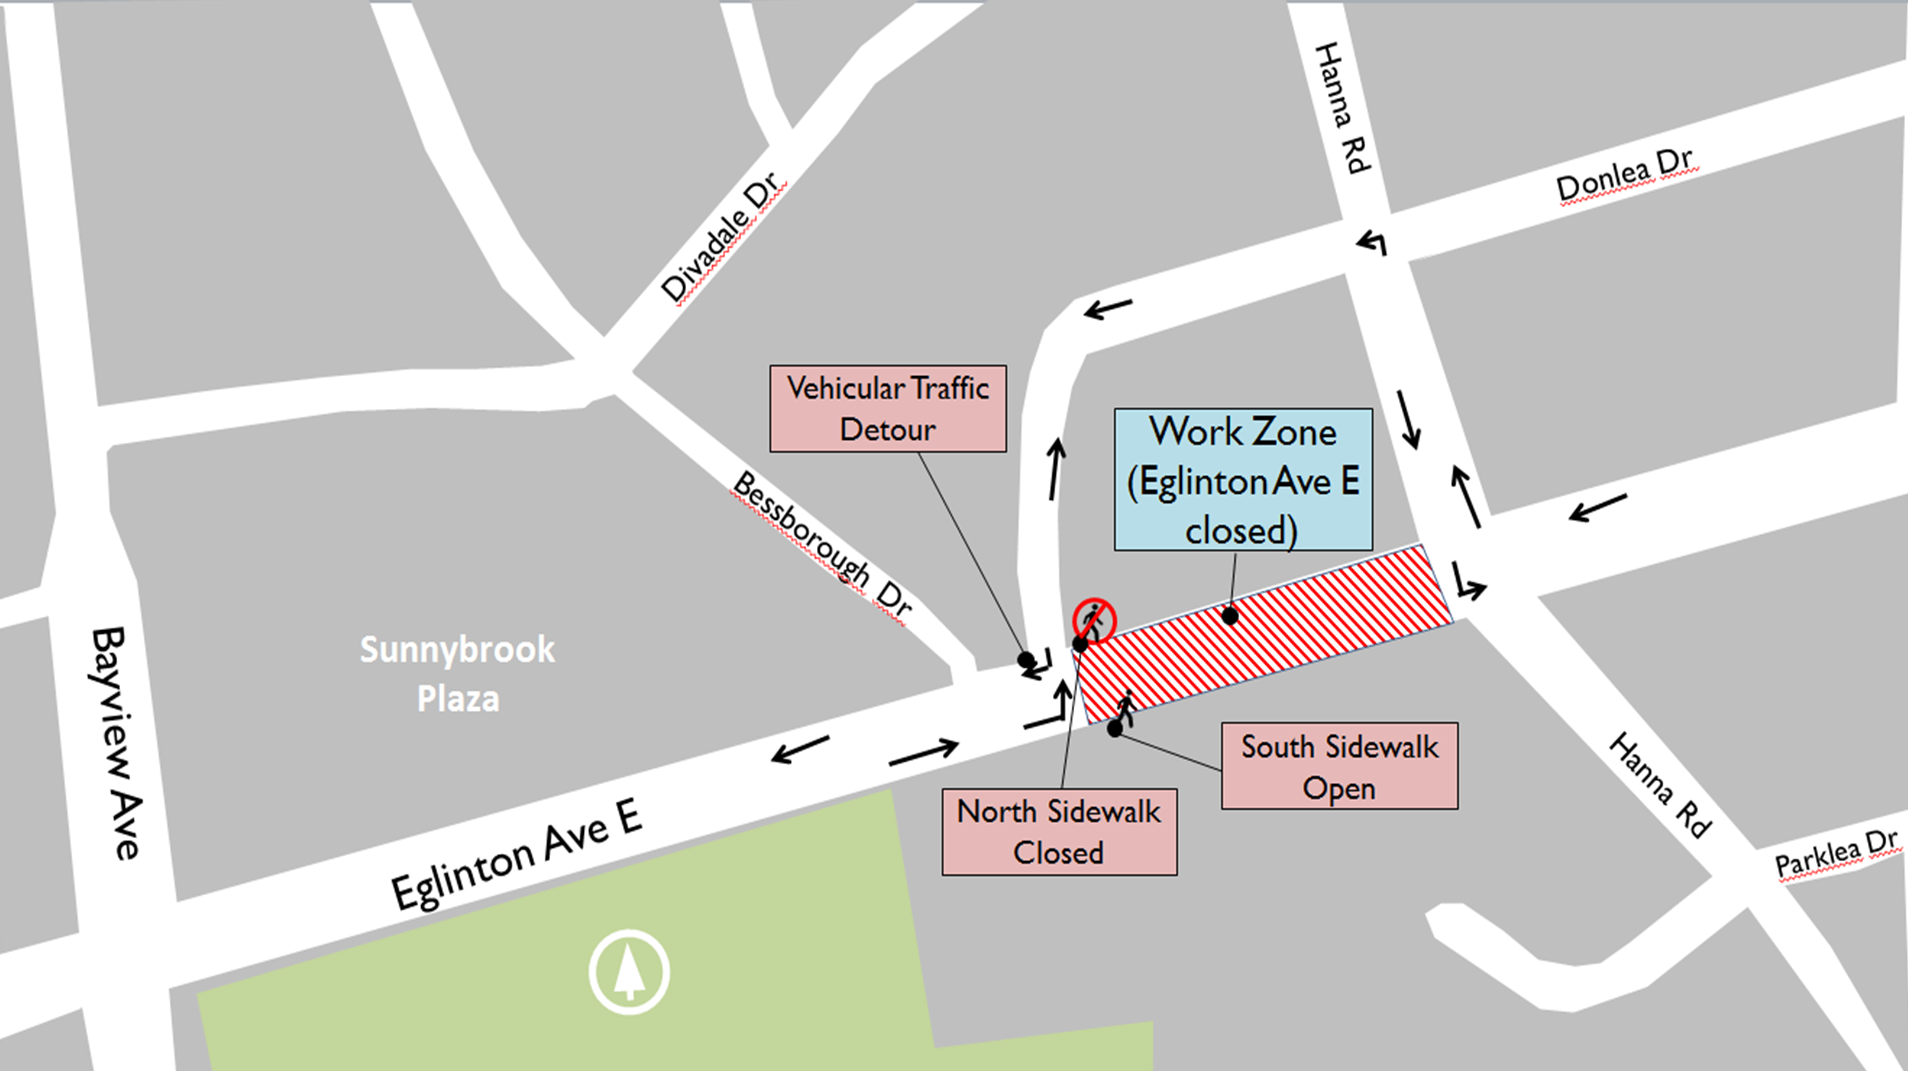 Map showing the vehicular traffic detour route for the Eglinton closure